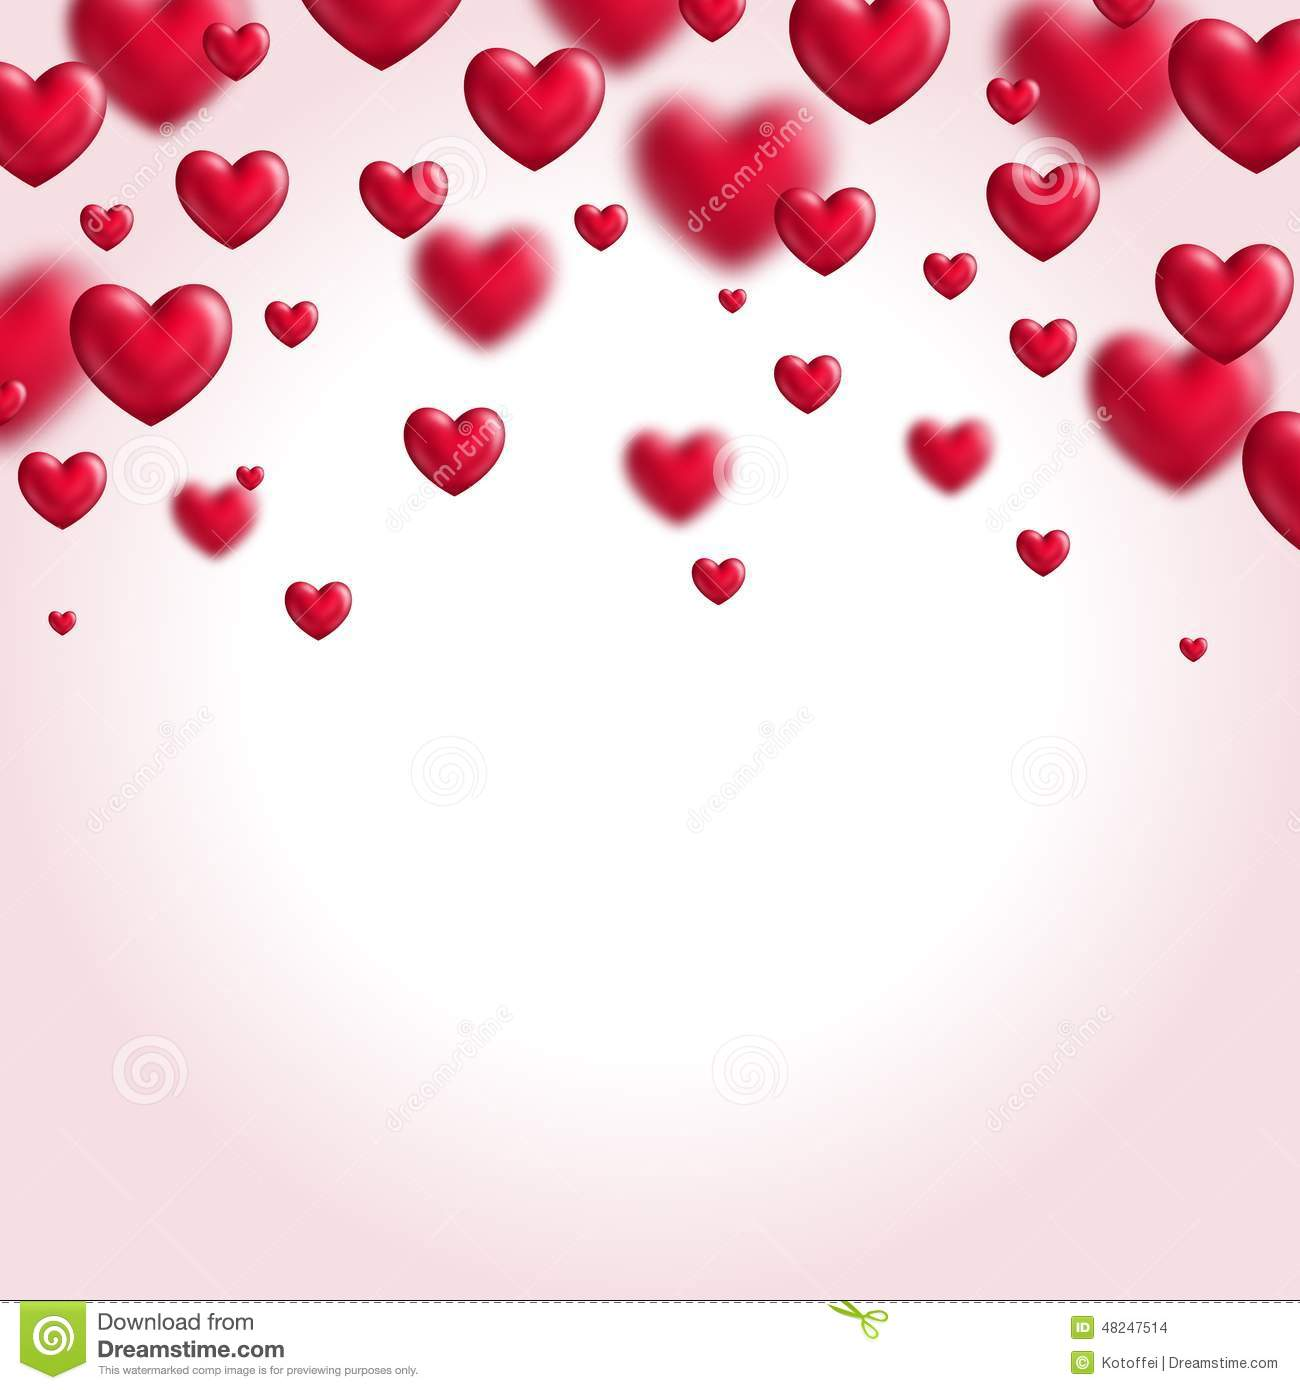 valentines day background clipart - photo #18